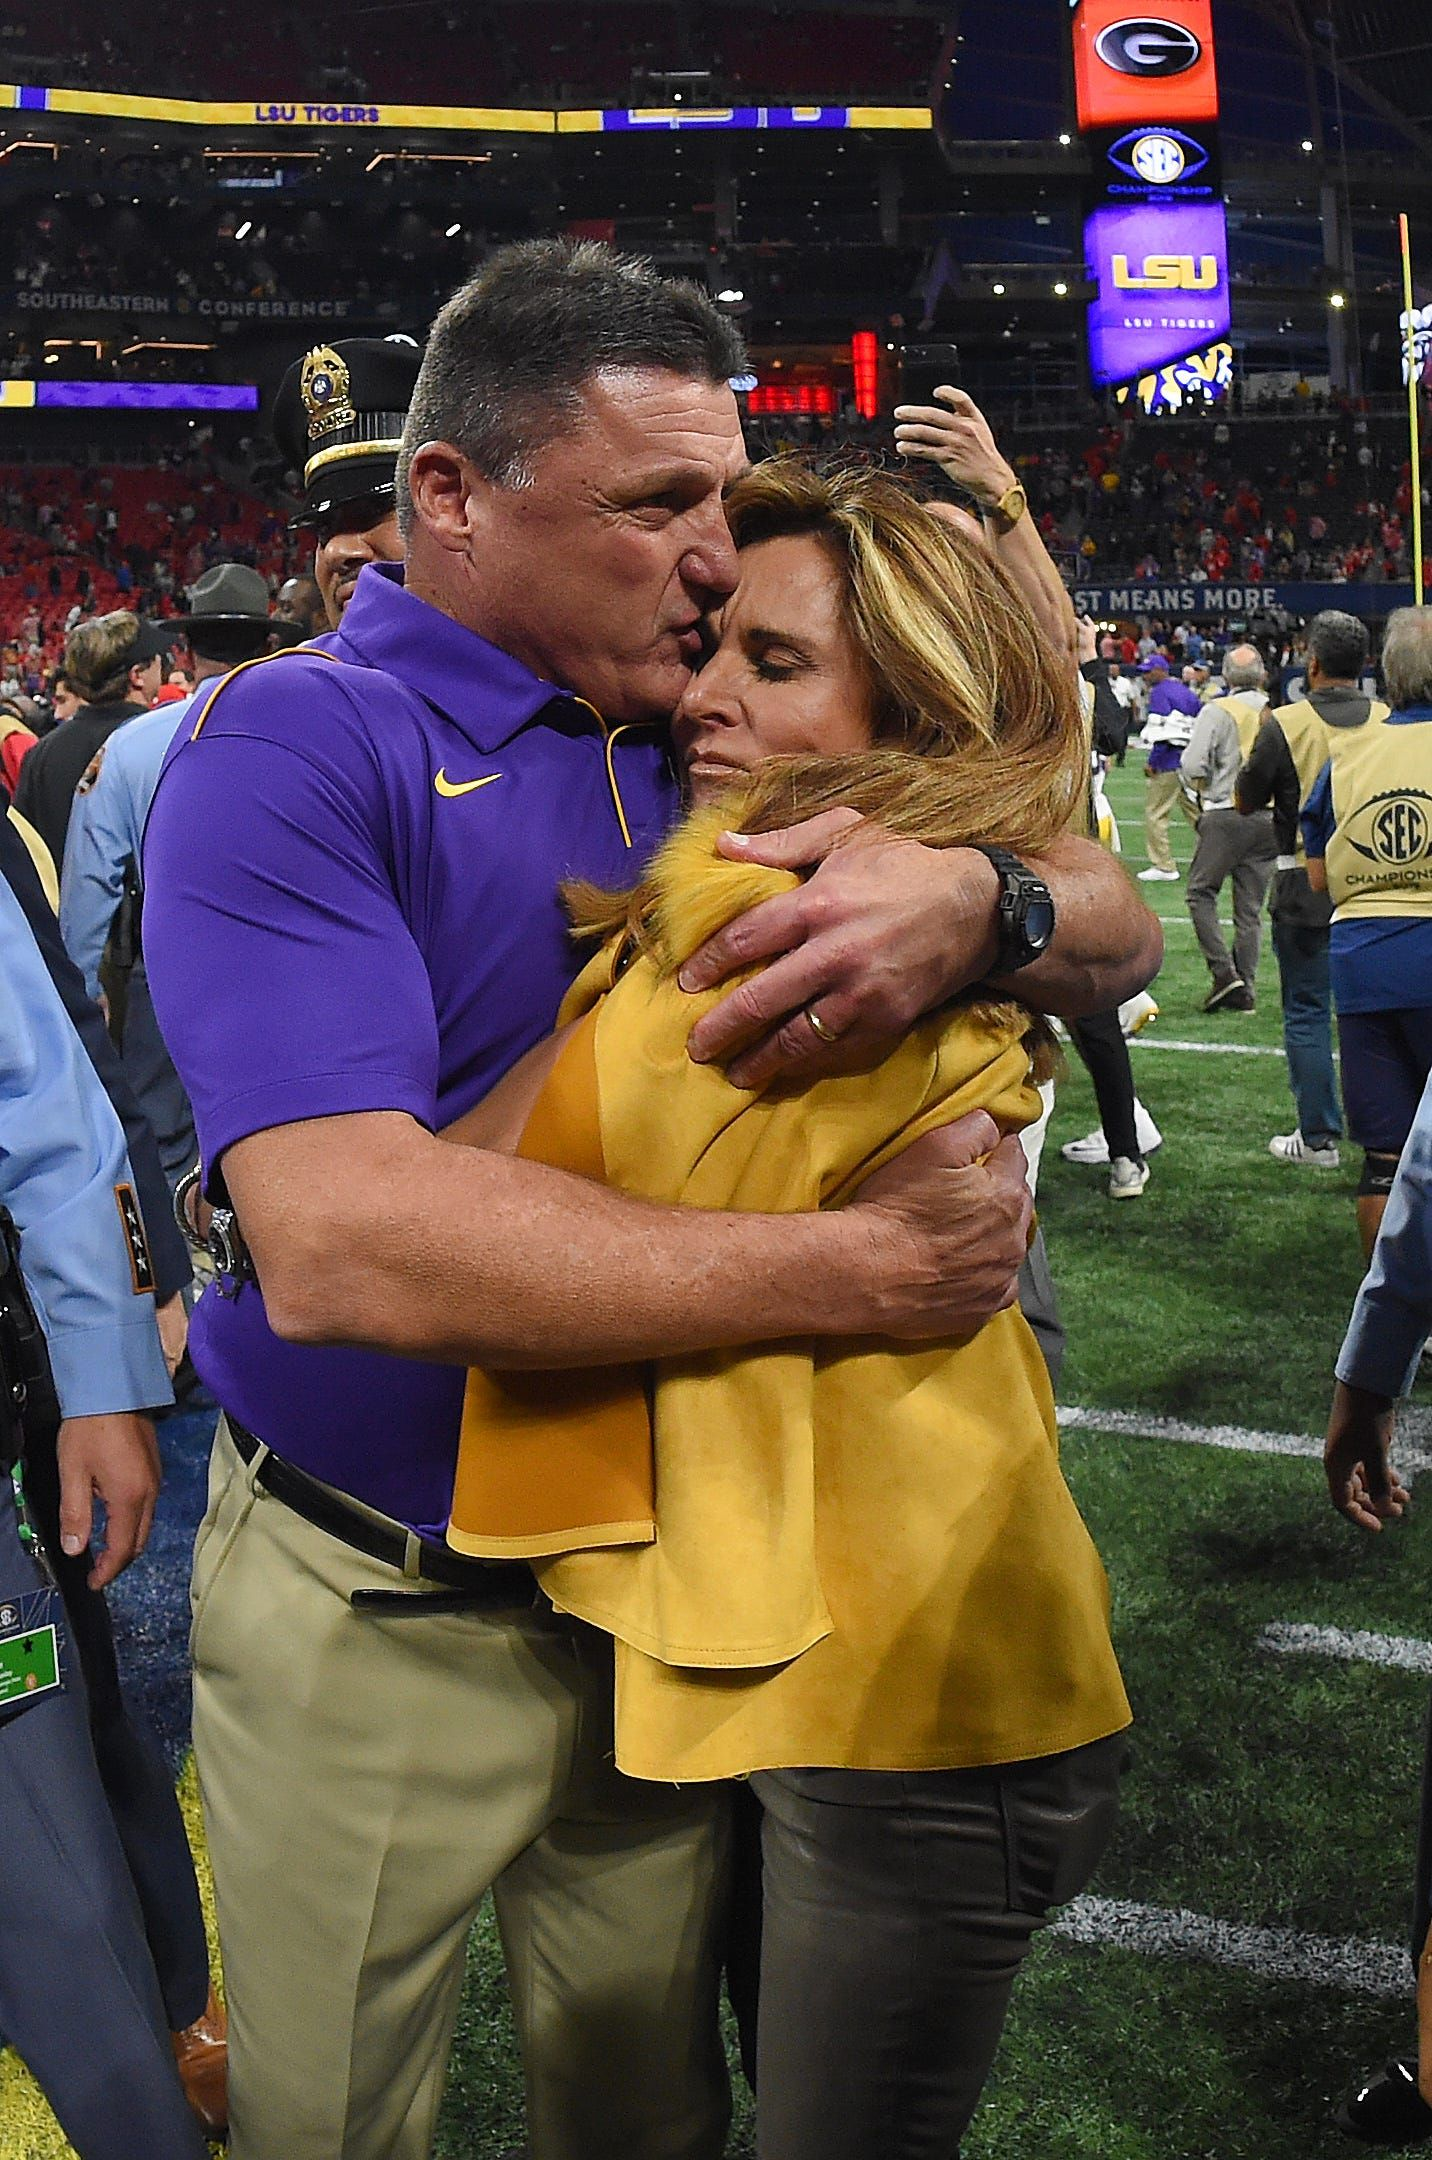 Lsu Football Coach Ed Orgeron And His Wife Kelly Are Divorcing In 2020 Lsu Football Football Coach Lsu